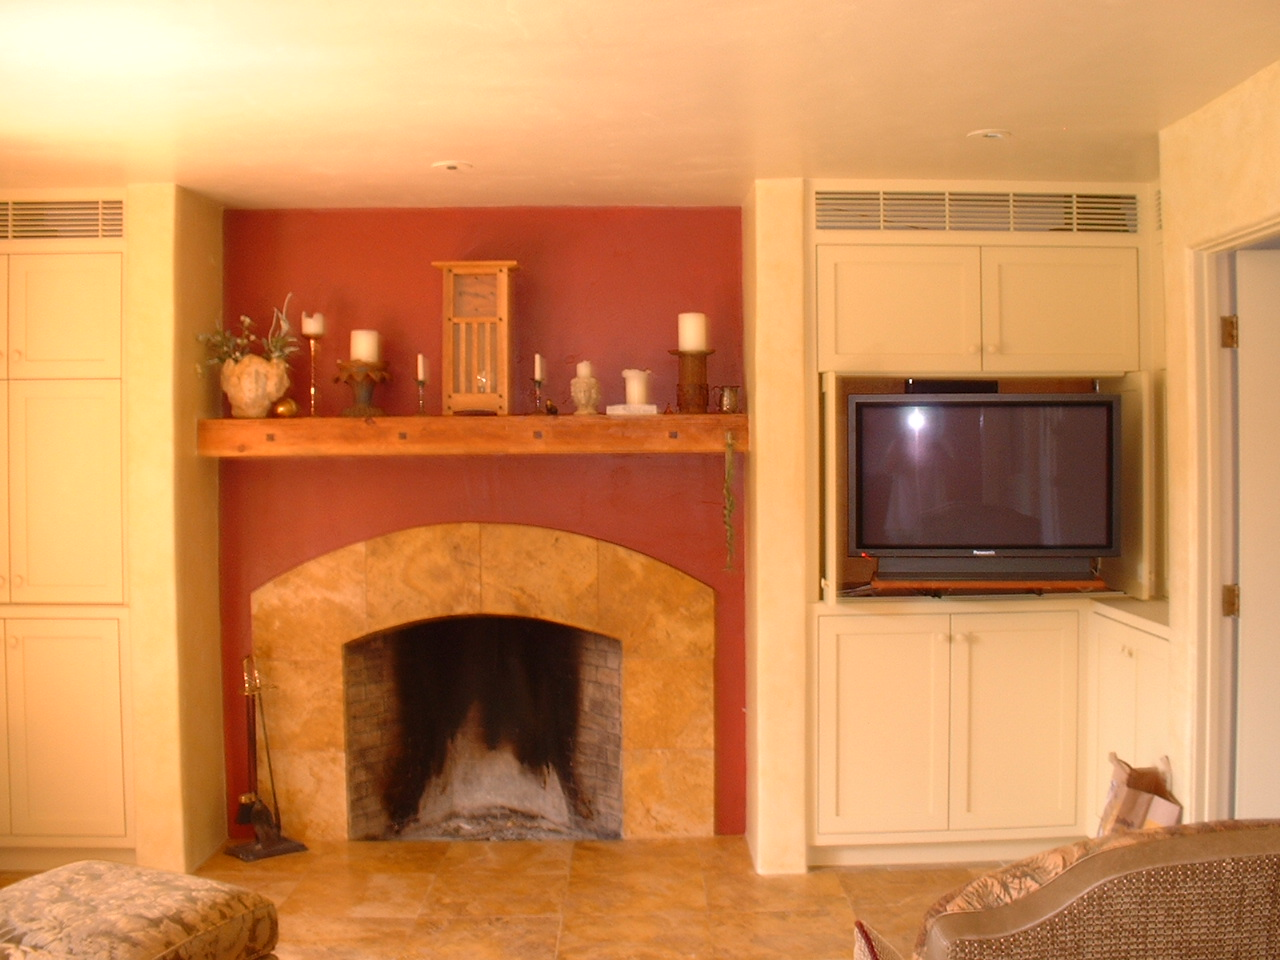 charming Rumford Fireplace with cream mantel kit on orange wall matched with cream ceramic wall plus sofa set for family room ideas